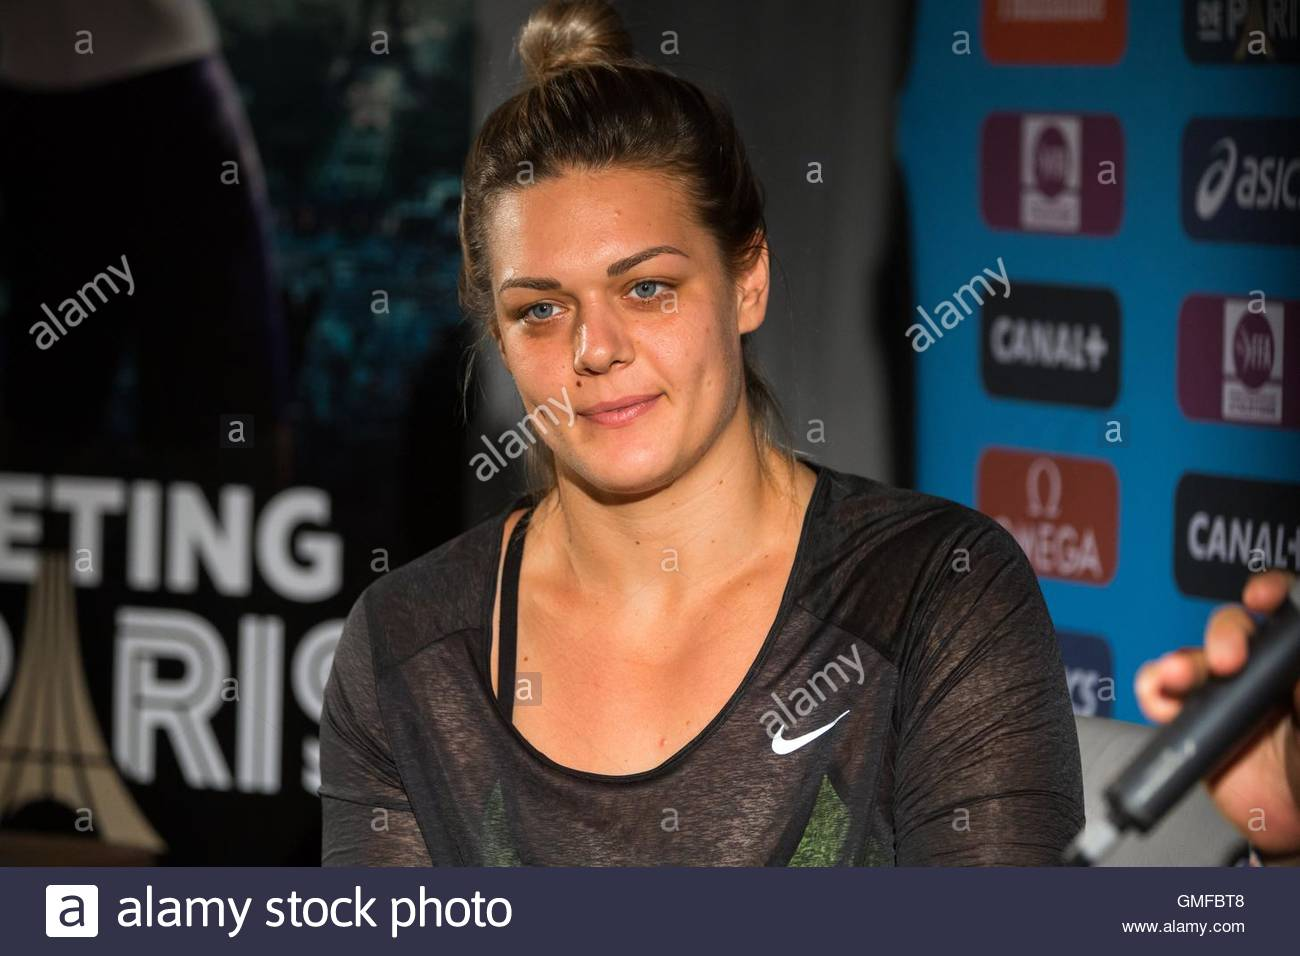 Paris, France. 26th Aug, 2016. Croatian discus thrower Sandra Perkovic takes part in a press conference ahead of - Stock Image